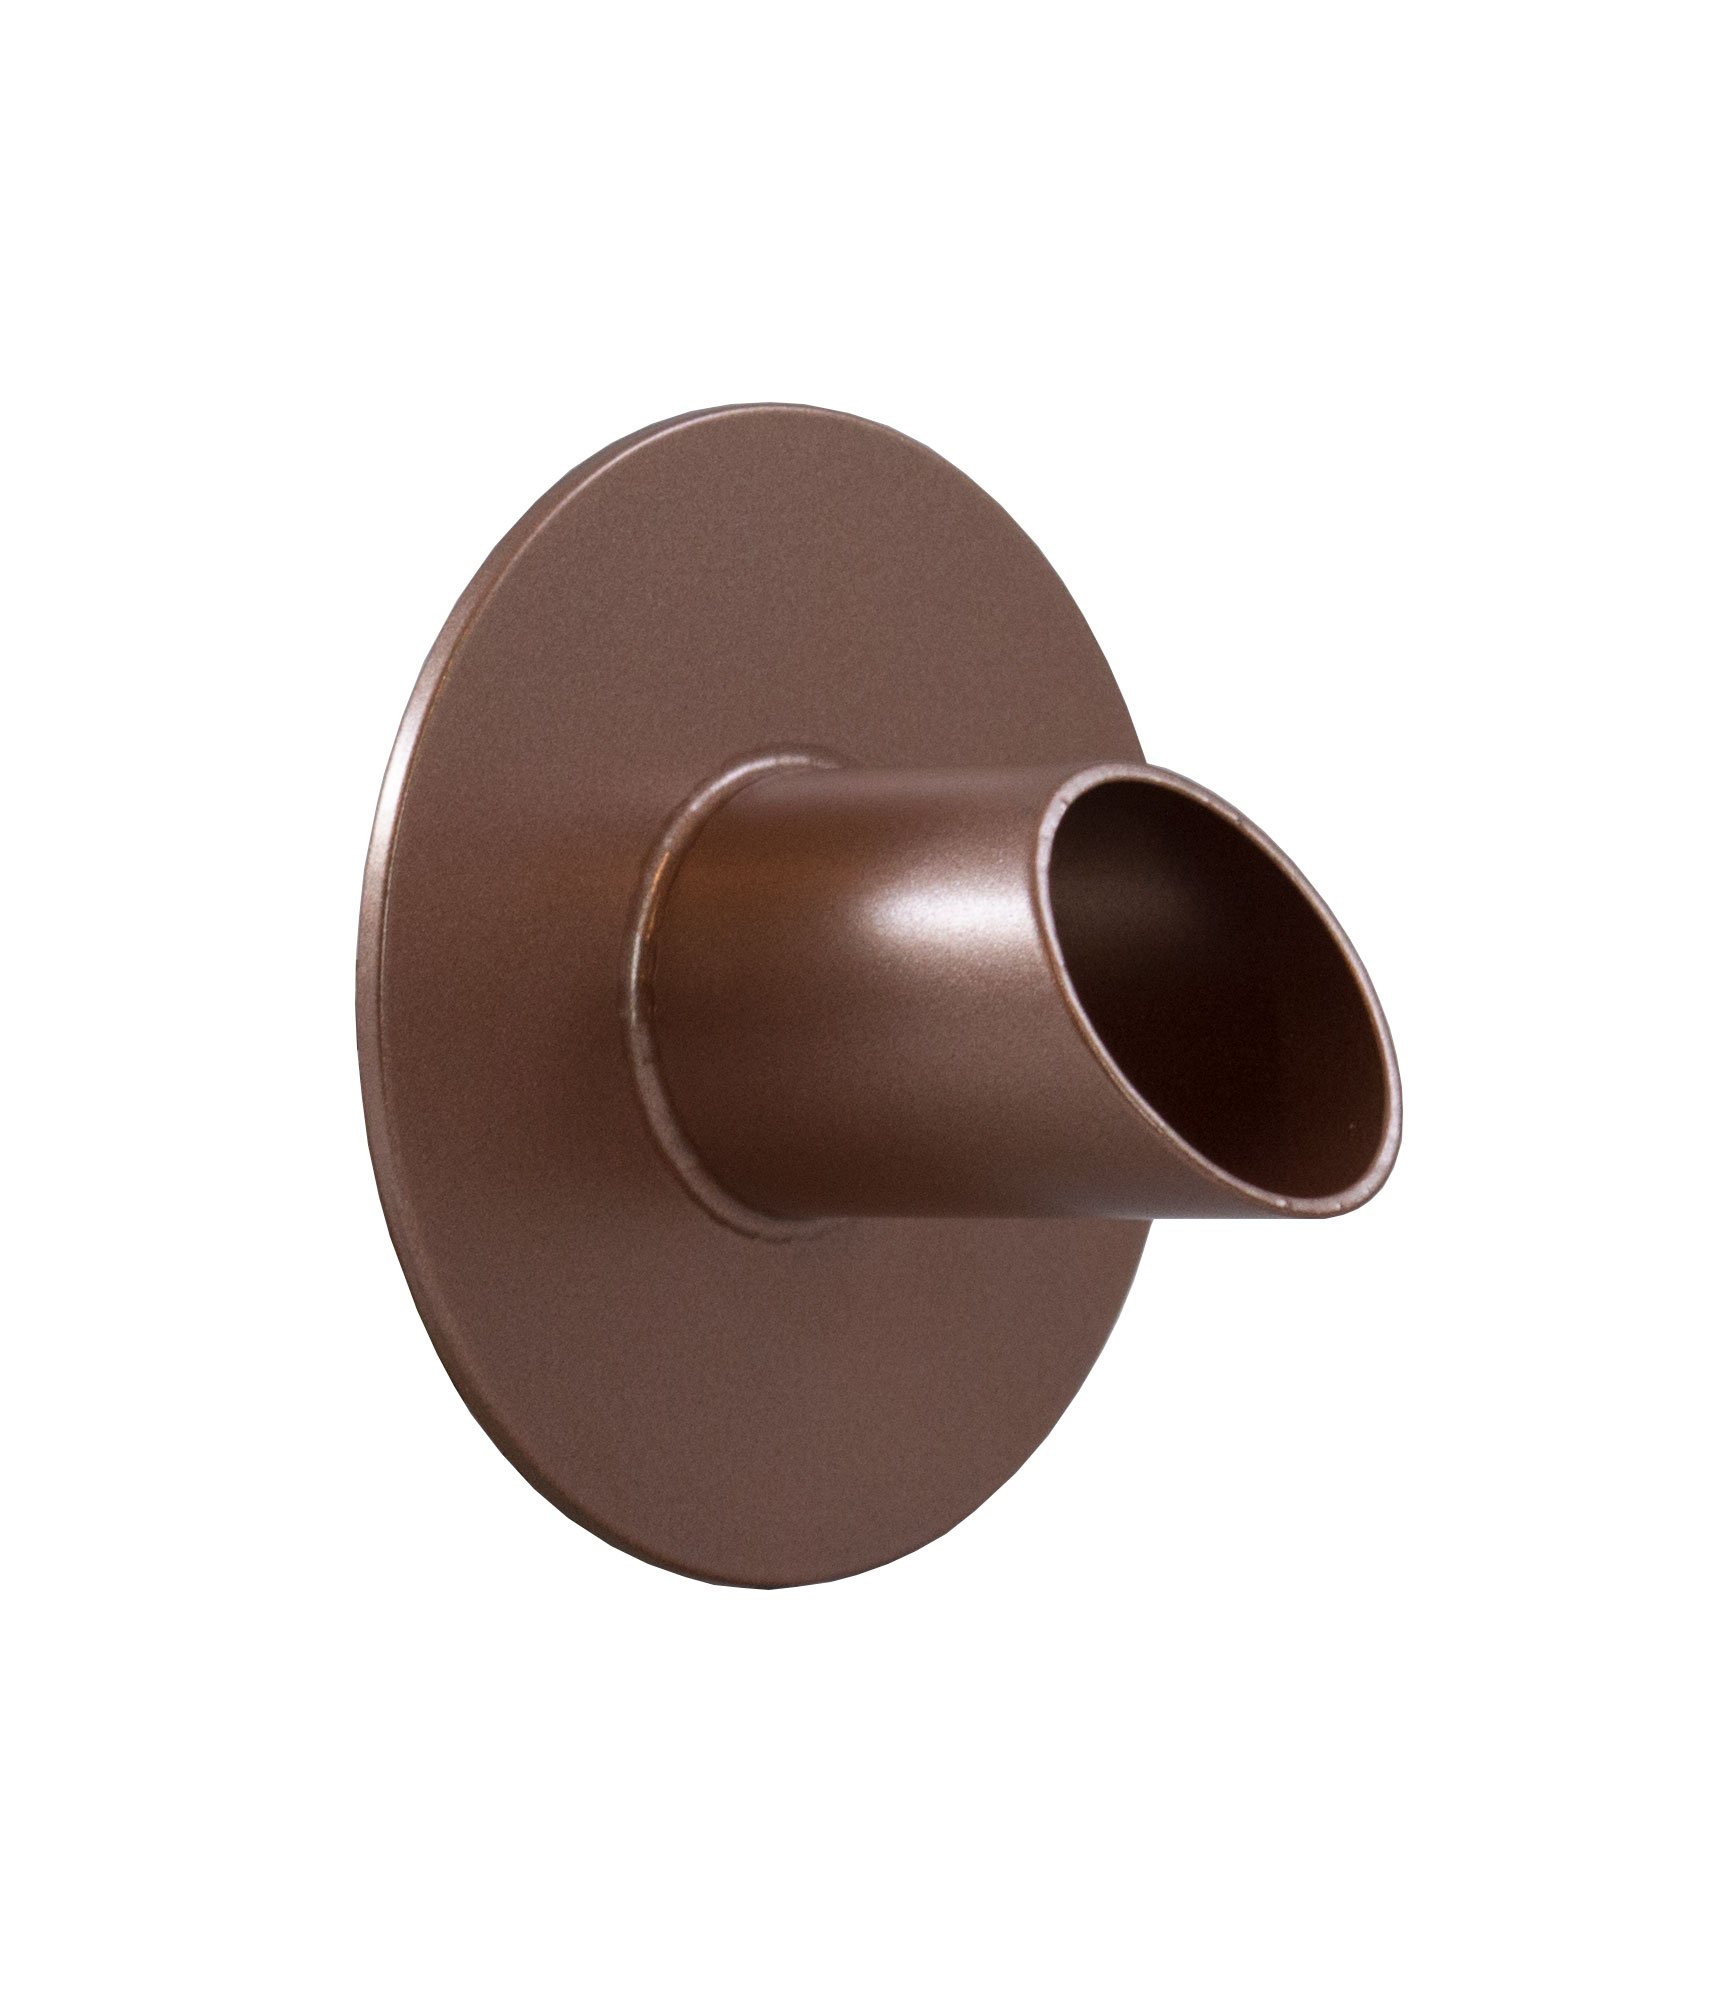 Majestic Water Spouts Waverly 1.5'' Round Water Fountain Spout Scupper Spillway Emitter for Pool, Pond, Water Feature, Etc - Copper by Majestic Water Spouts